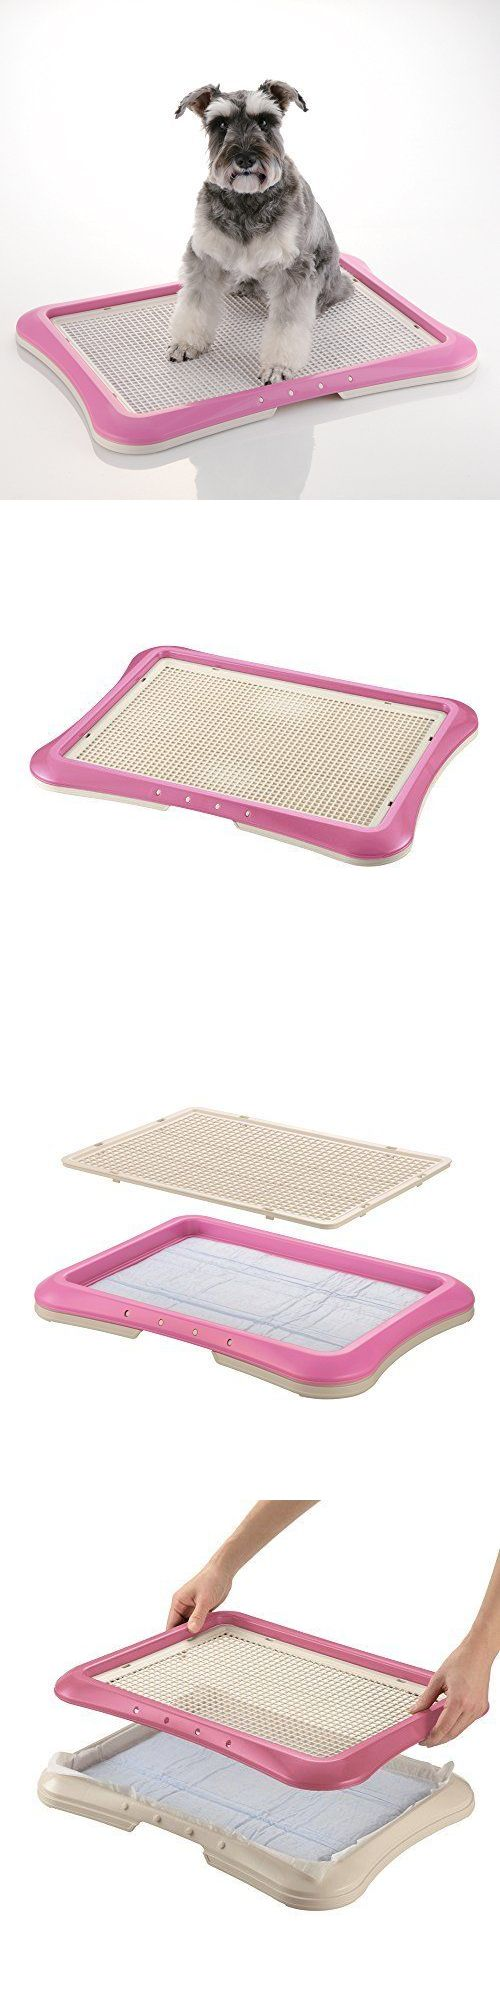 Other Dog Supplies 11286: Dog Training Pad Holder Paw Trax Mesh Puppy Potty Tray Absorbent Doggy Pet Pink BUY IT NOW ONLY: $43.42